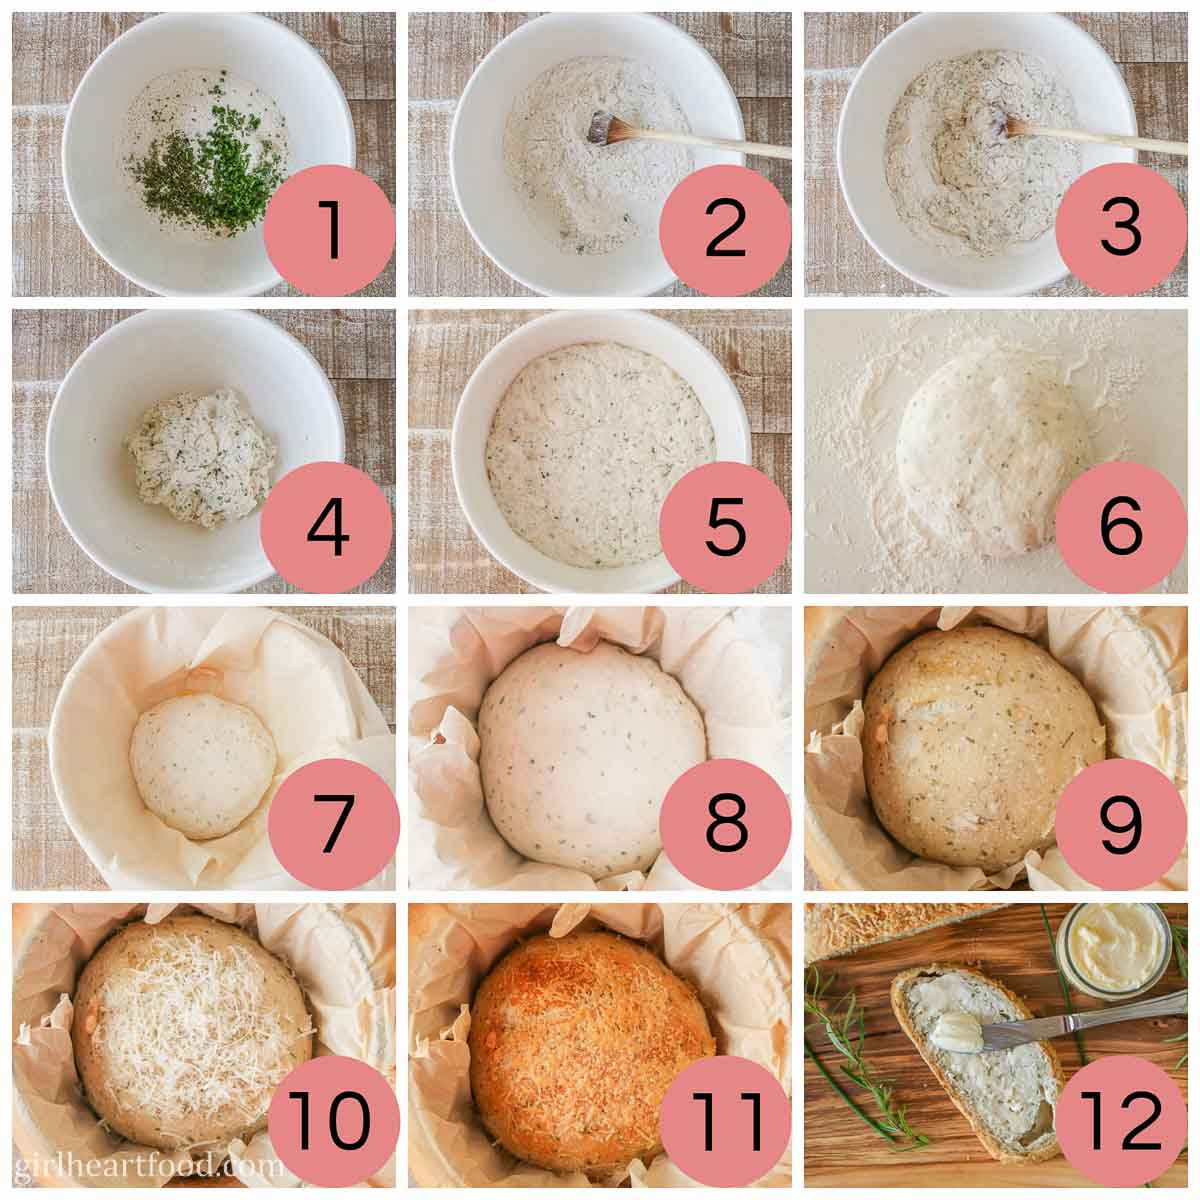 Collage of steps to make rosemary Parmesan Dutch oven bread.